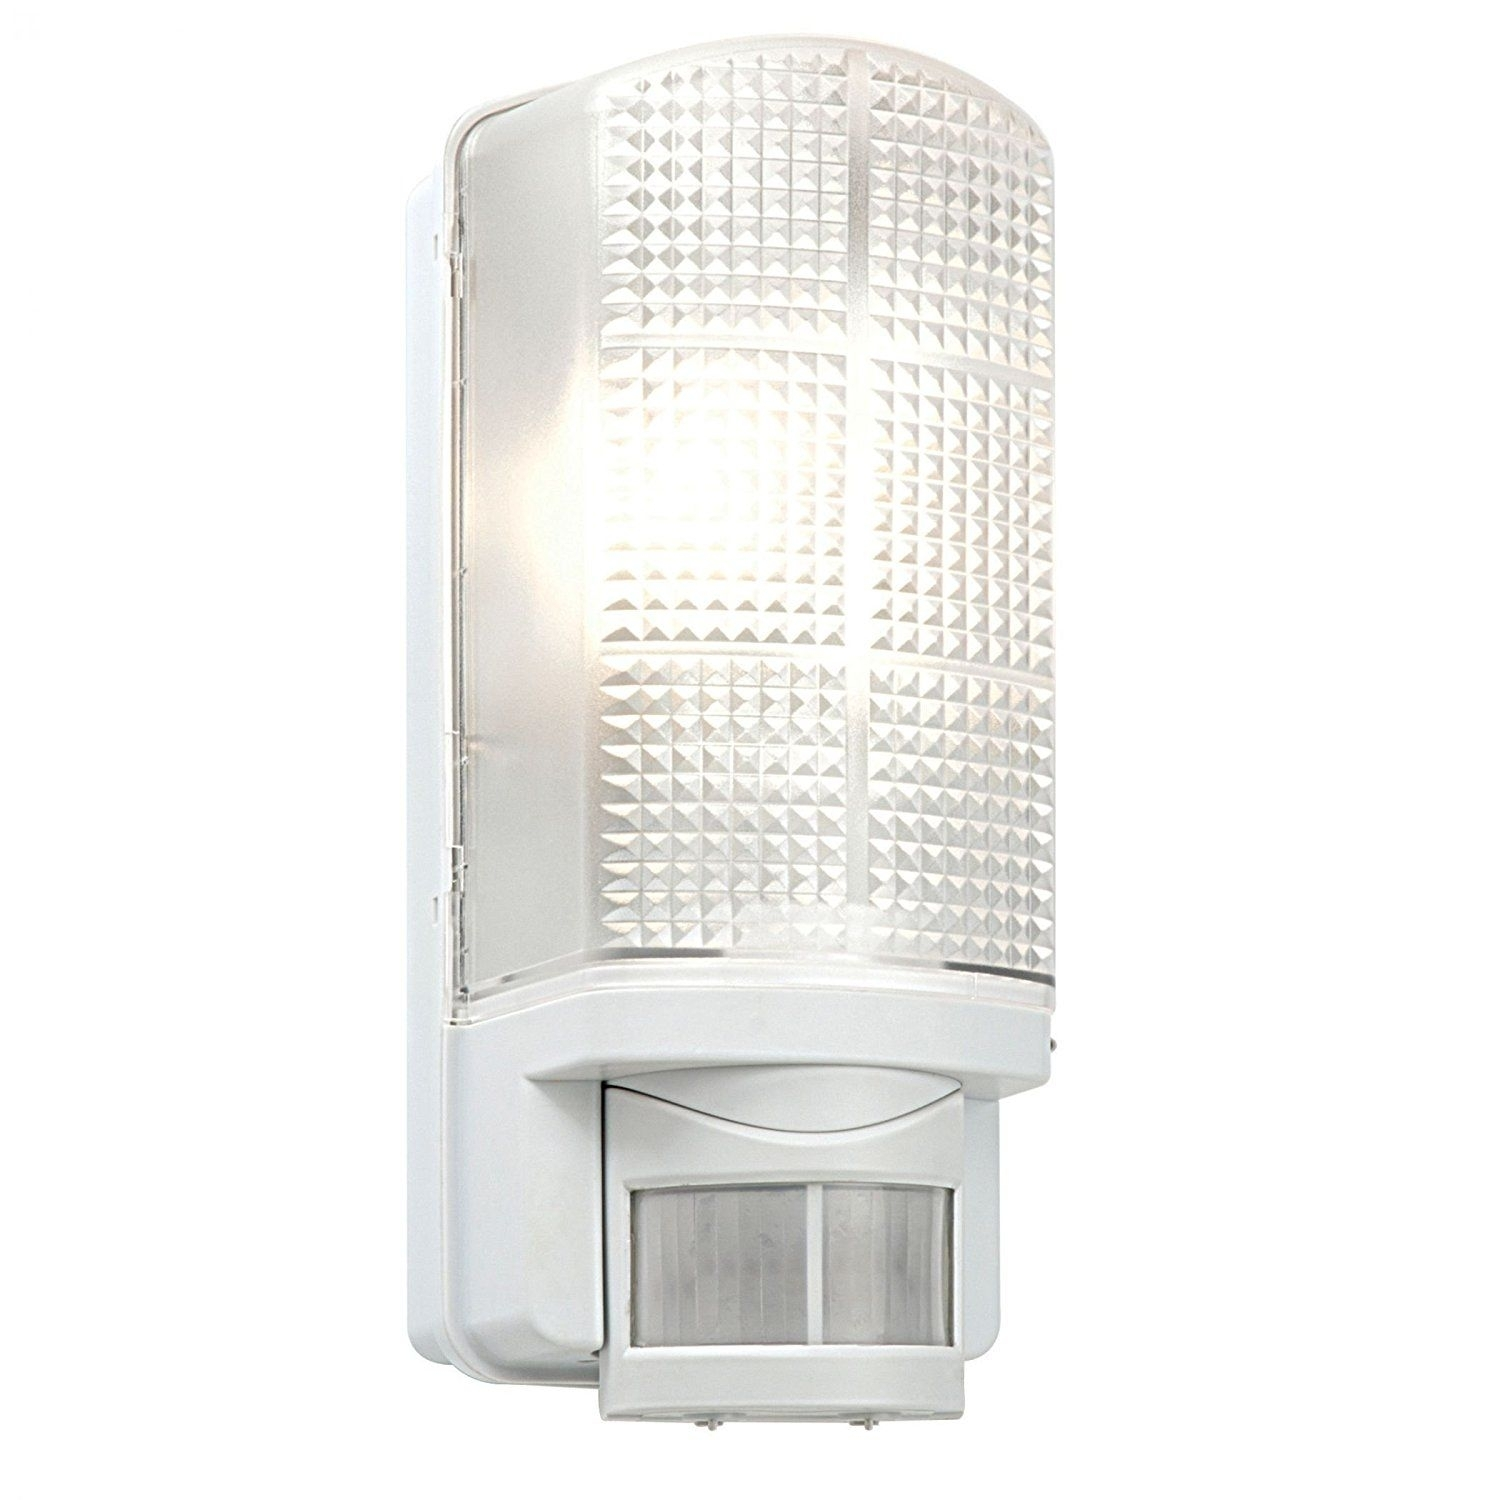 Saxby Rh60 Modern Outdoor Garden Porch Pir Ip44 Motion Sensor White Intended For Led Outdoor Raccoon Wall Lights With Motion Detector (View 11 of 15)